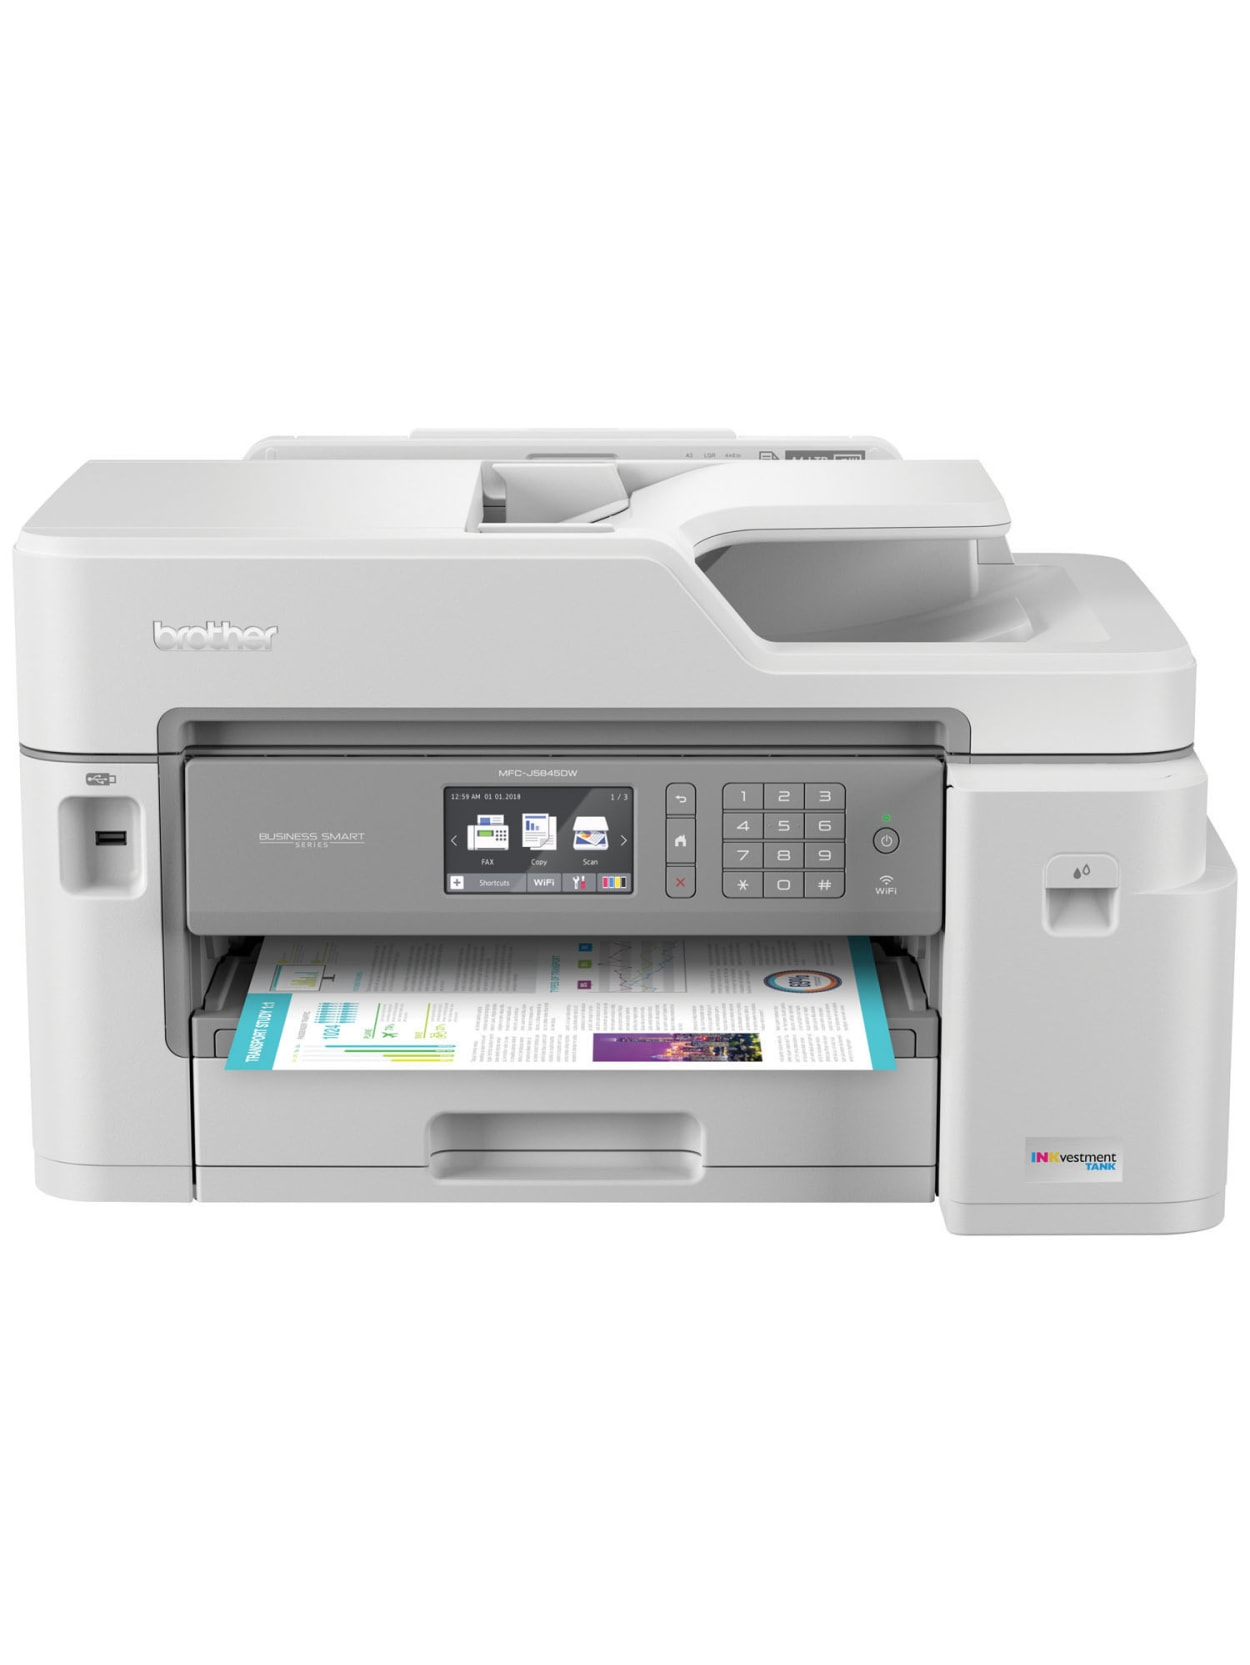 Brother Inkvestment Tank Mfc J5845dw Wireless Inkjet All In One Color Printer Office Depot